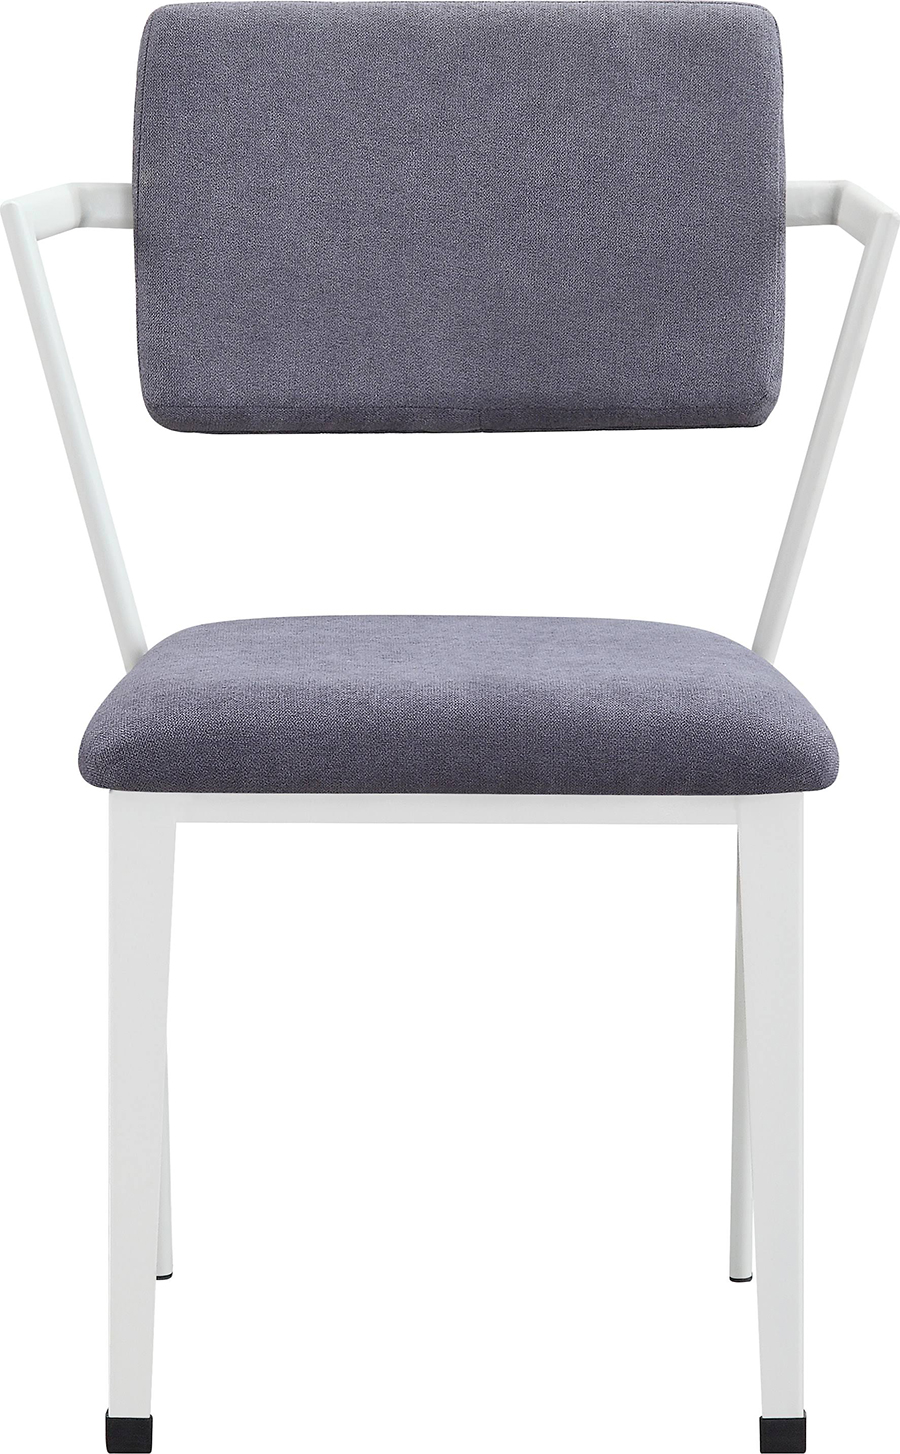 White Arm Chair Front